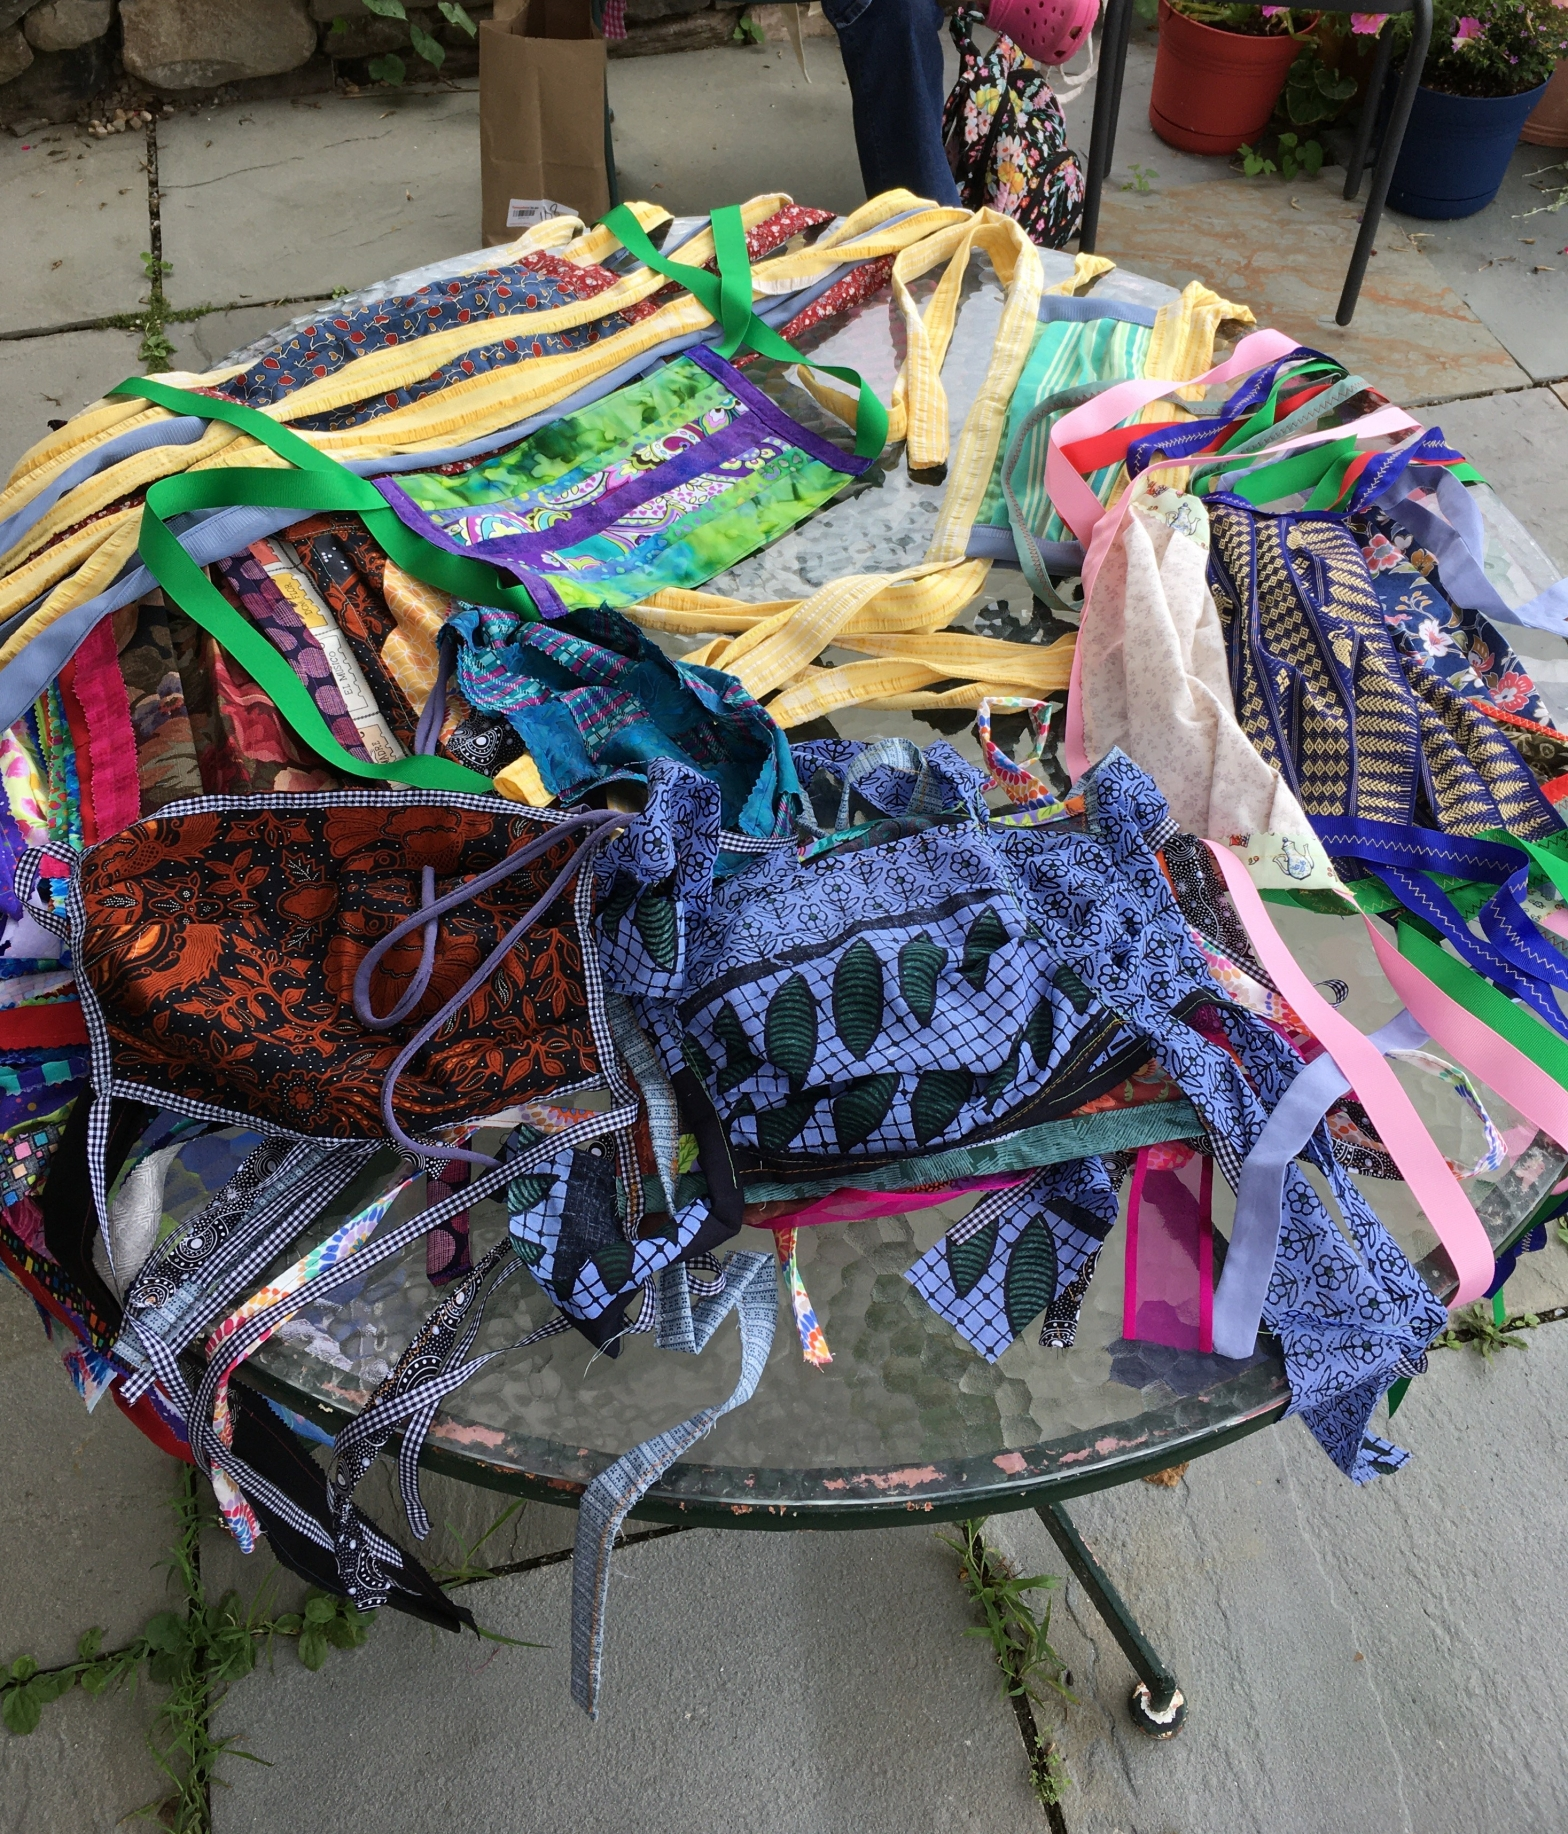 Pile of colorful sewn masks with ties on a round table.